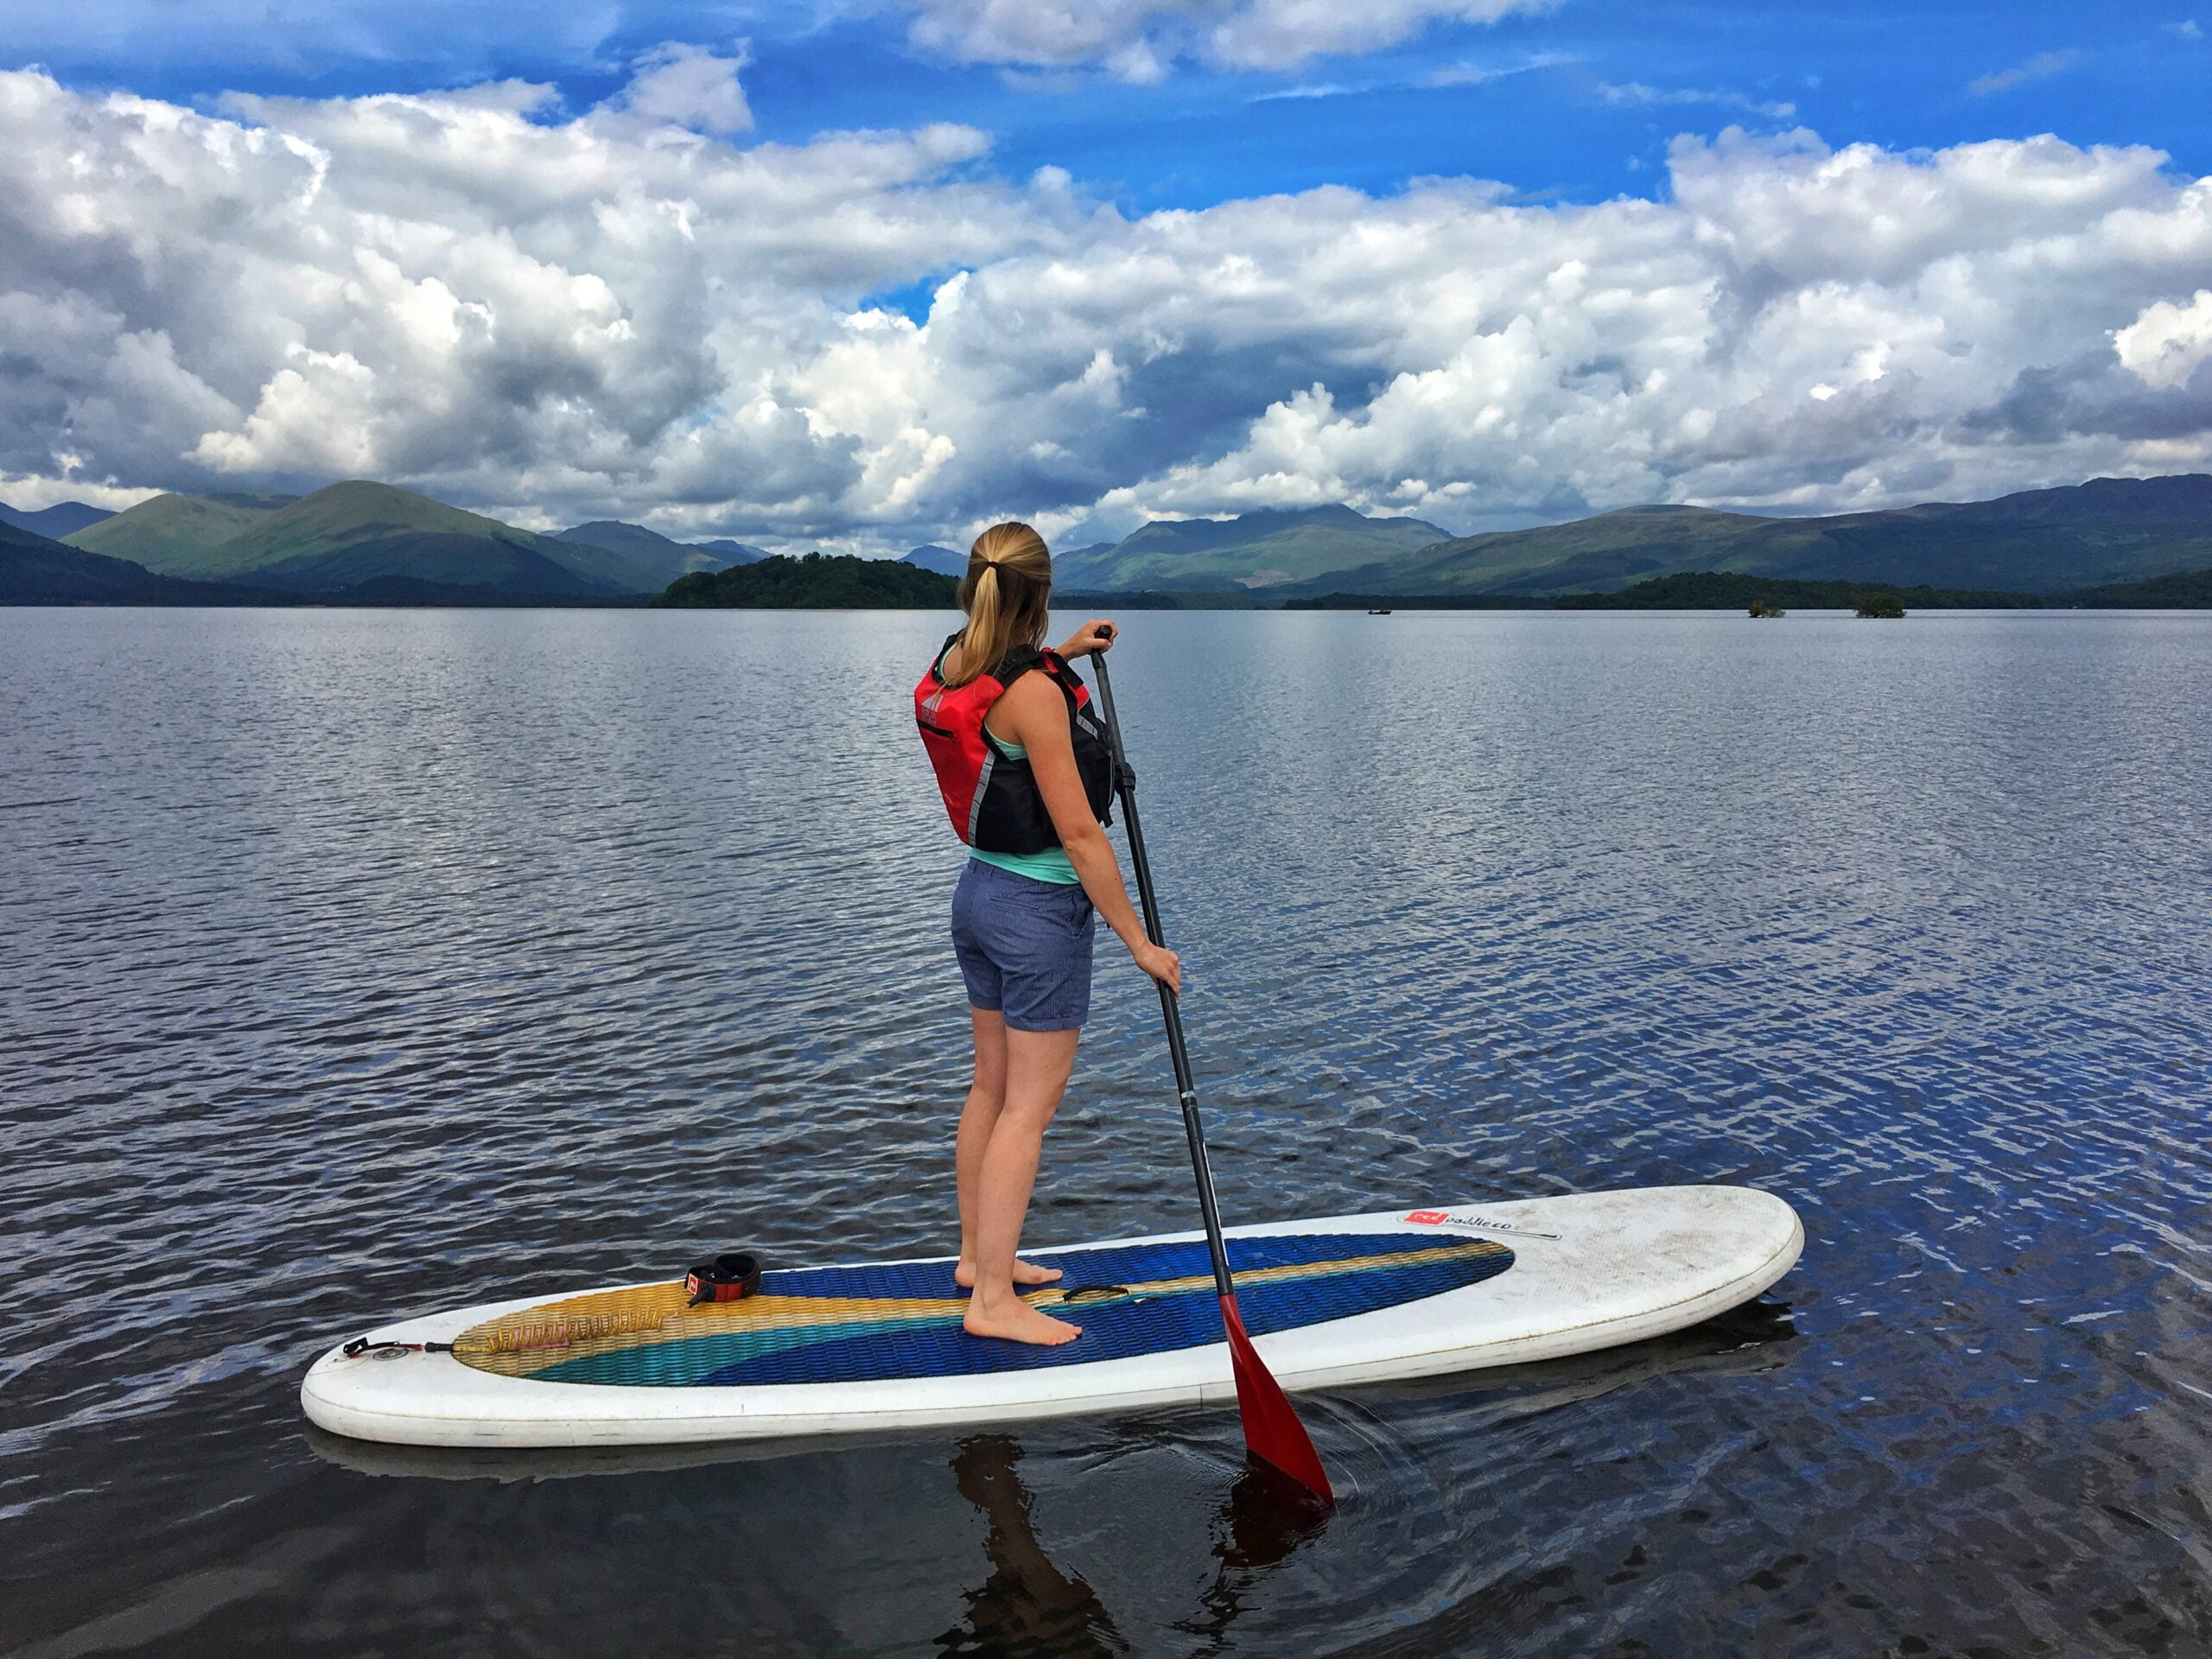 Girl stand-up paddleboarding on Loch Lomond